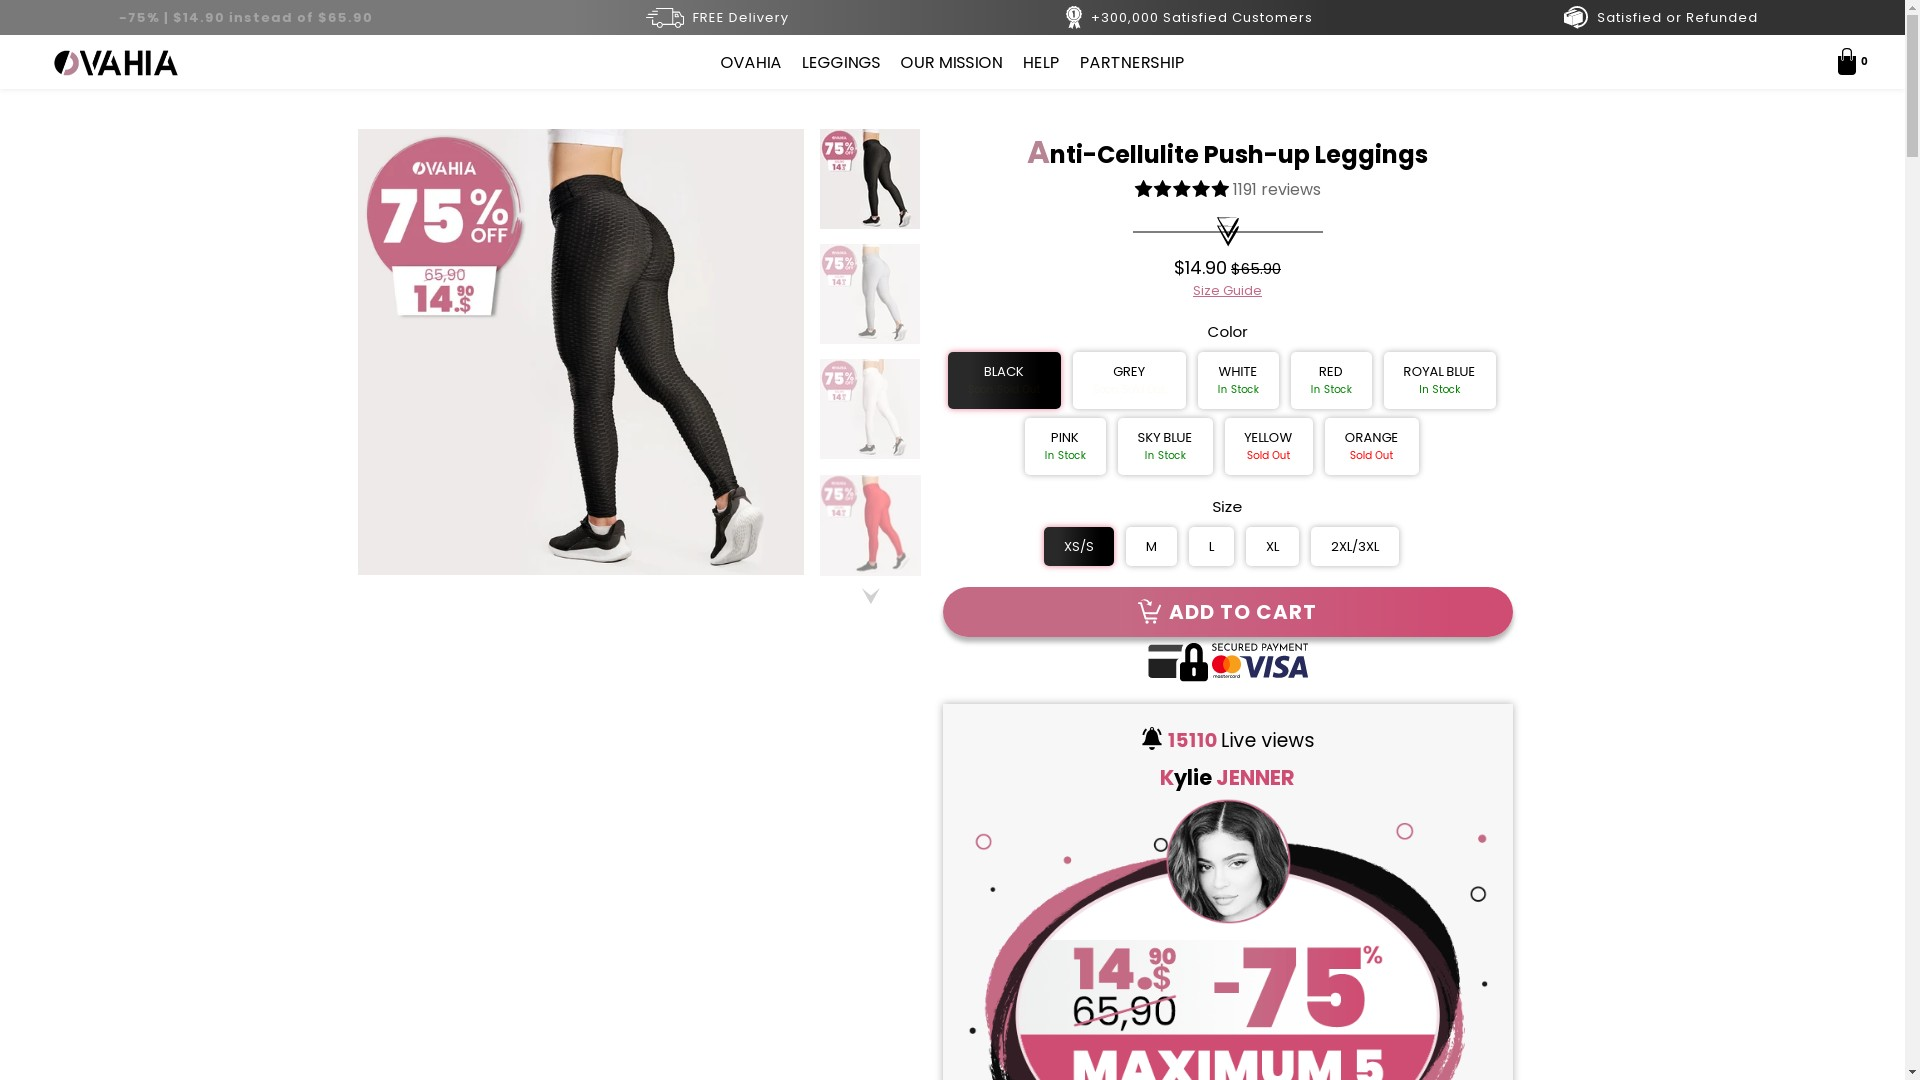 Ovahia Leggings Reviews: is the Store a Scam?